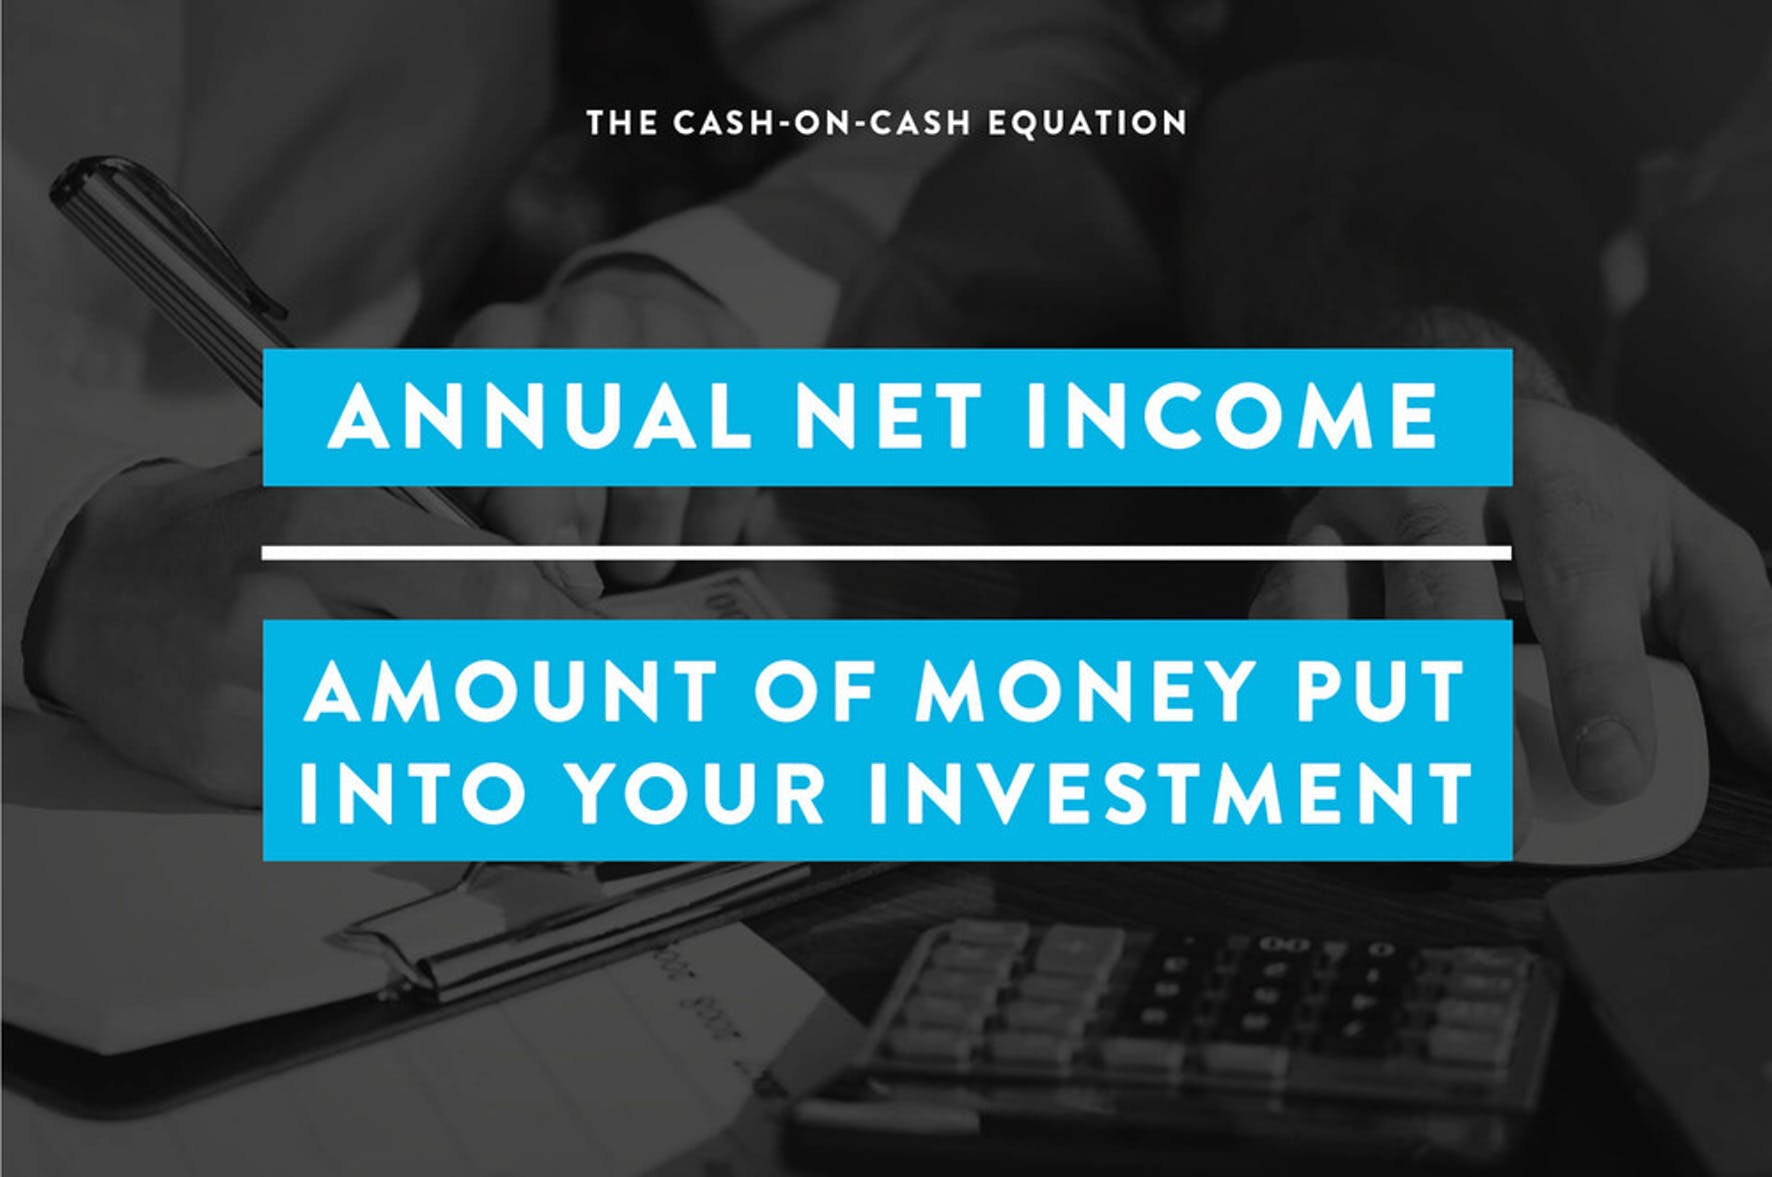 the cash-on-cash equation is annual net income divided by amount of money put into your investments